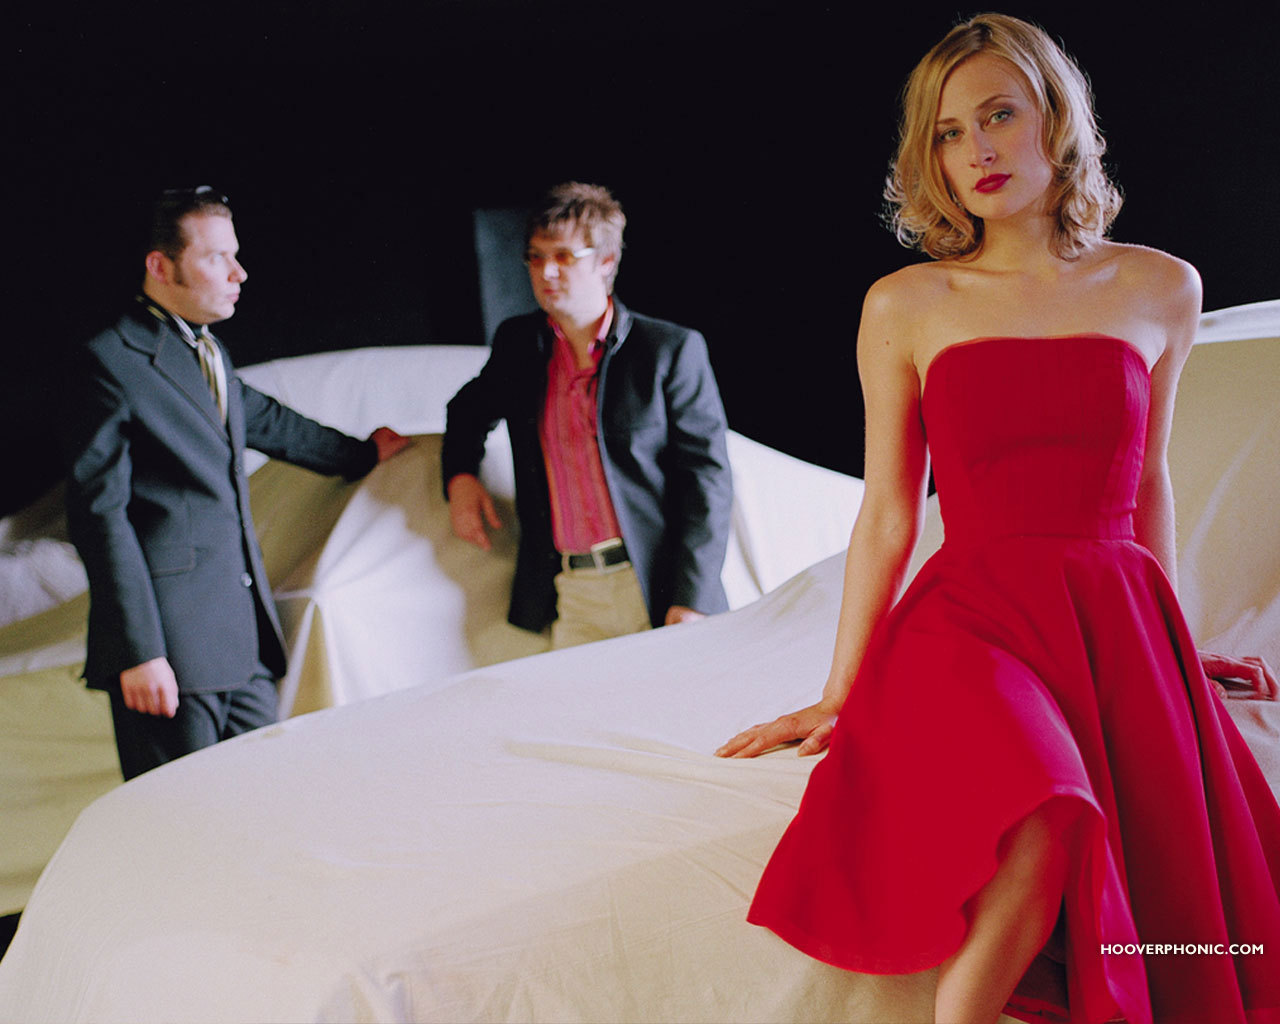 Pochette : Hooverphonic - The Night Before